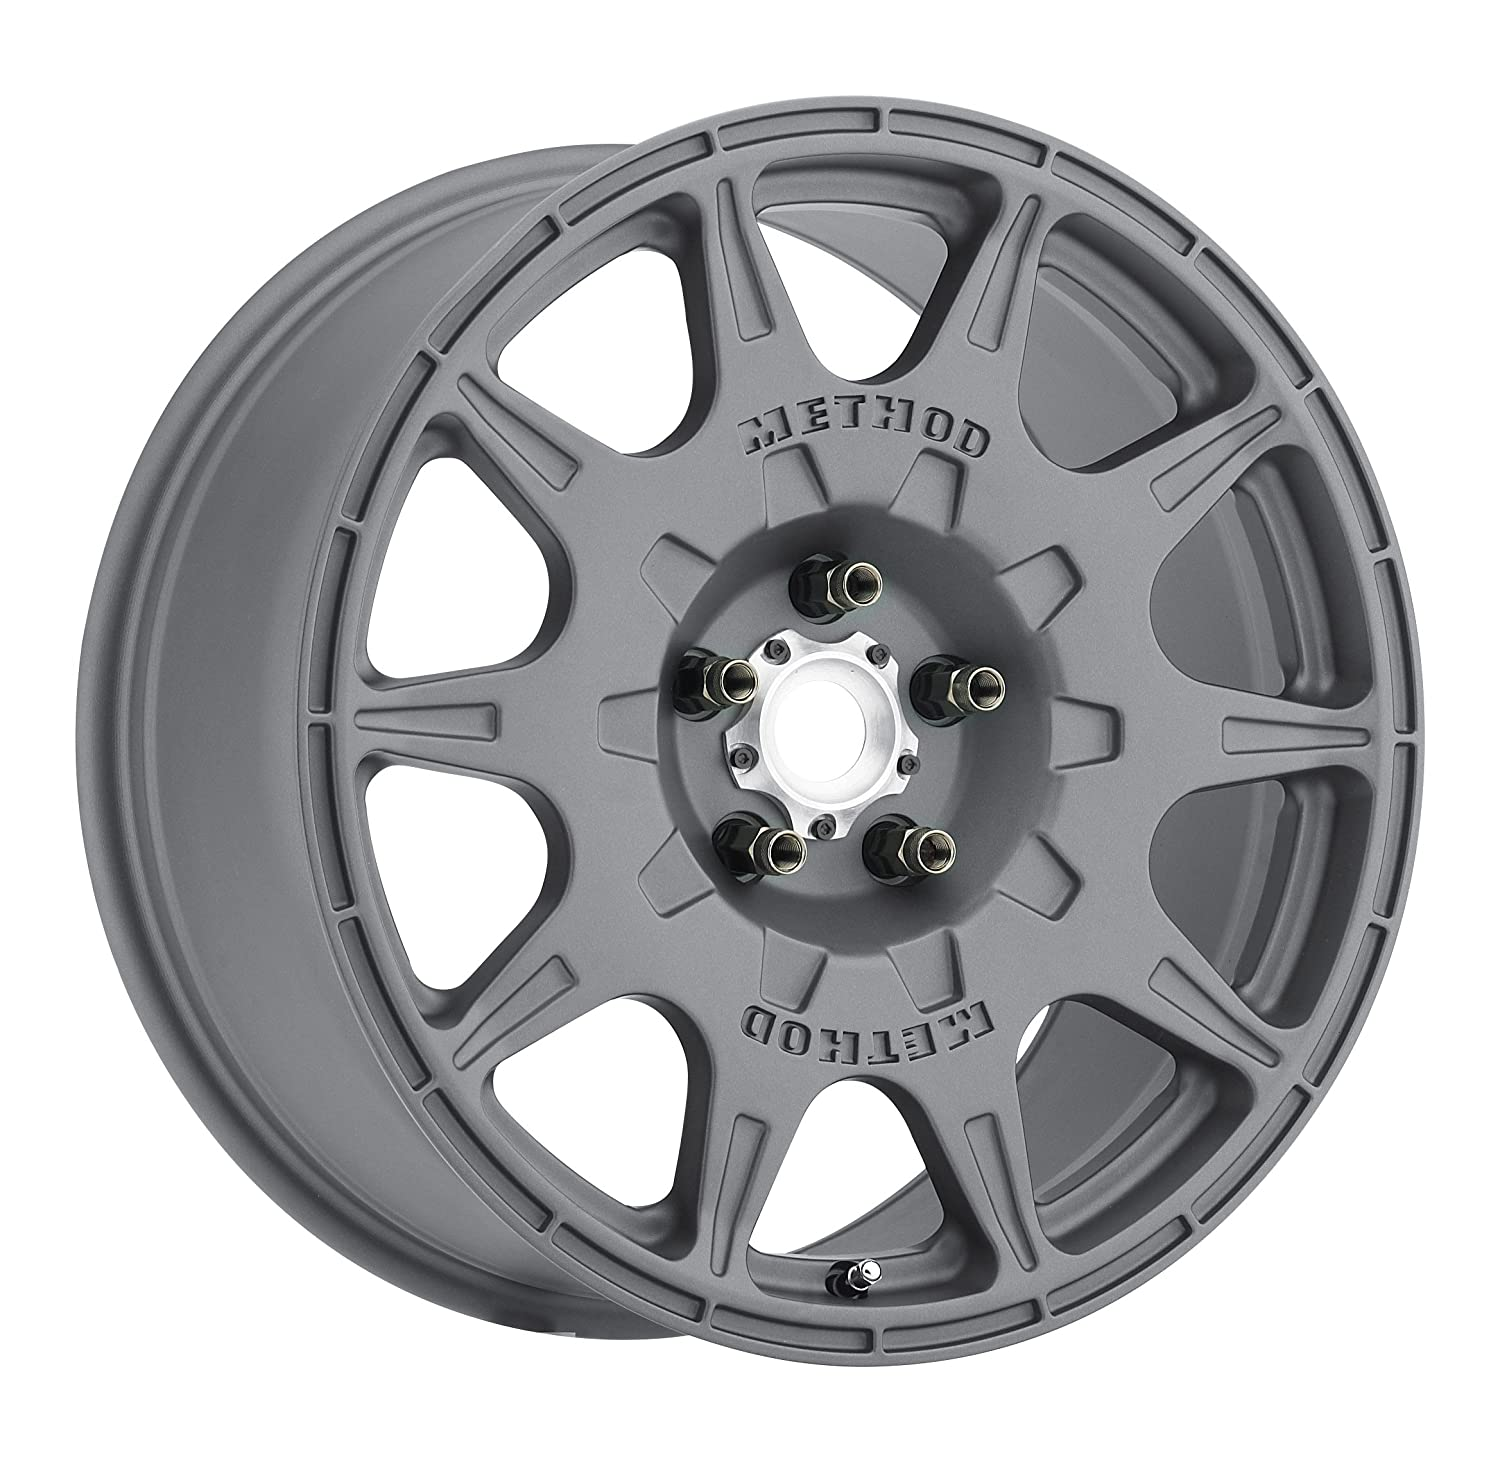 Amazon Method Race Wheels MR502 RALLY Titanium Wheel with